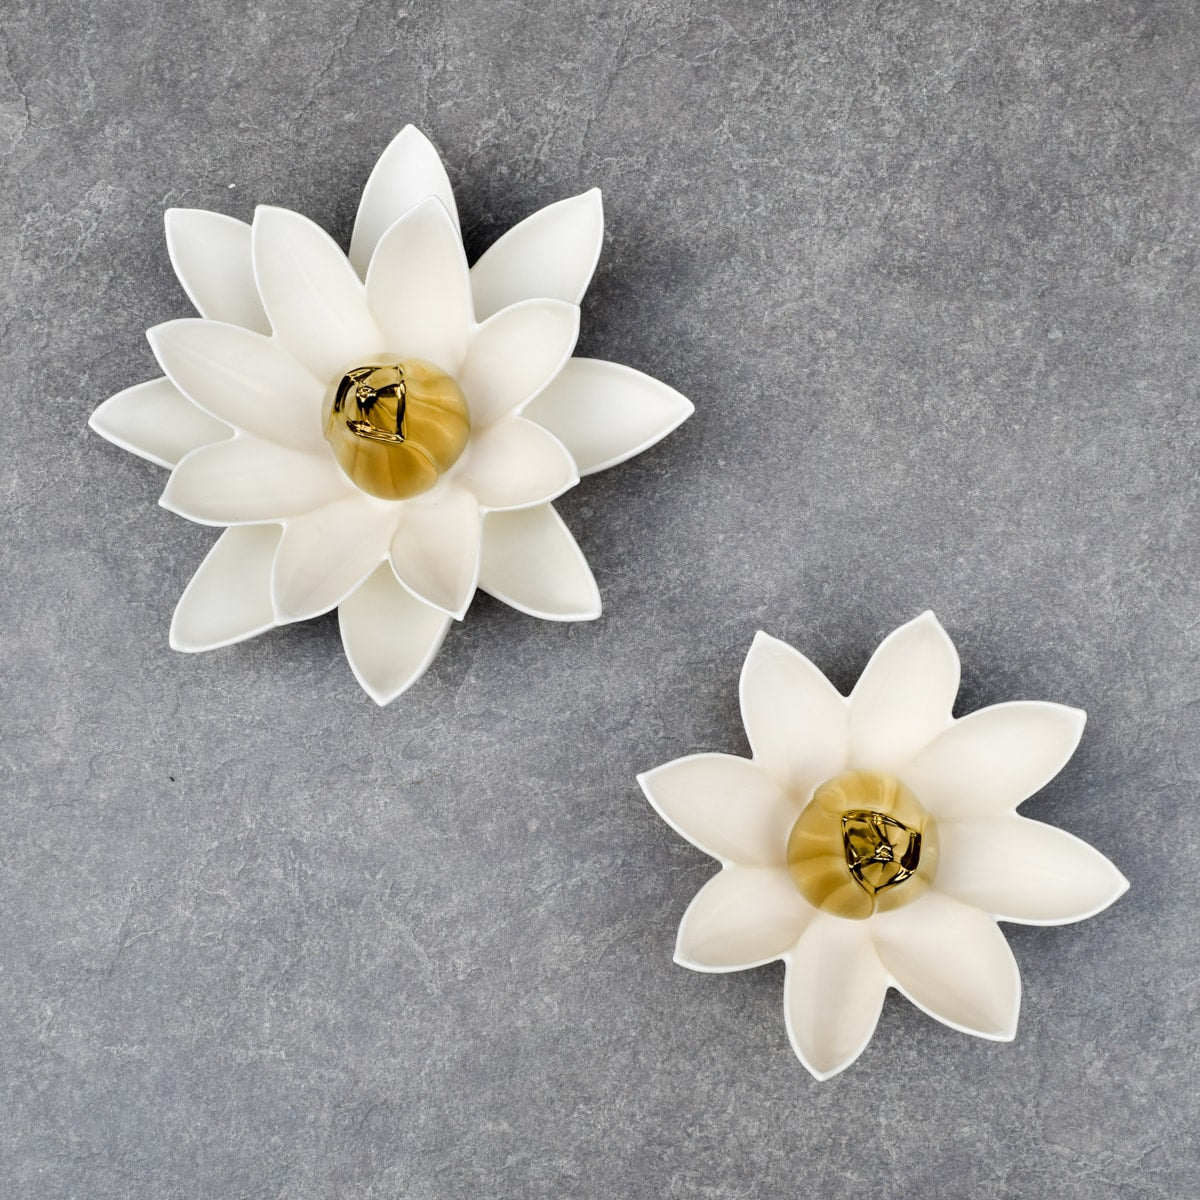 Lotus Flower Ceramic Wall Sculptures